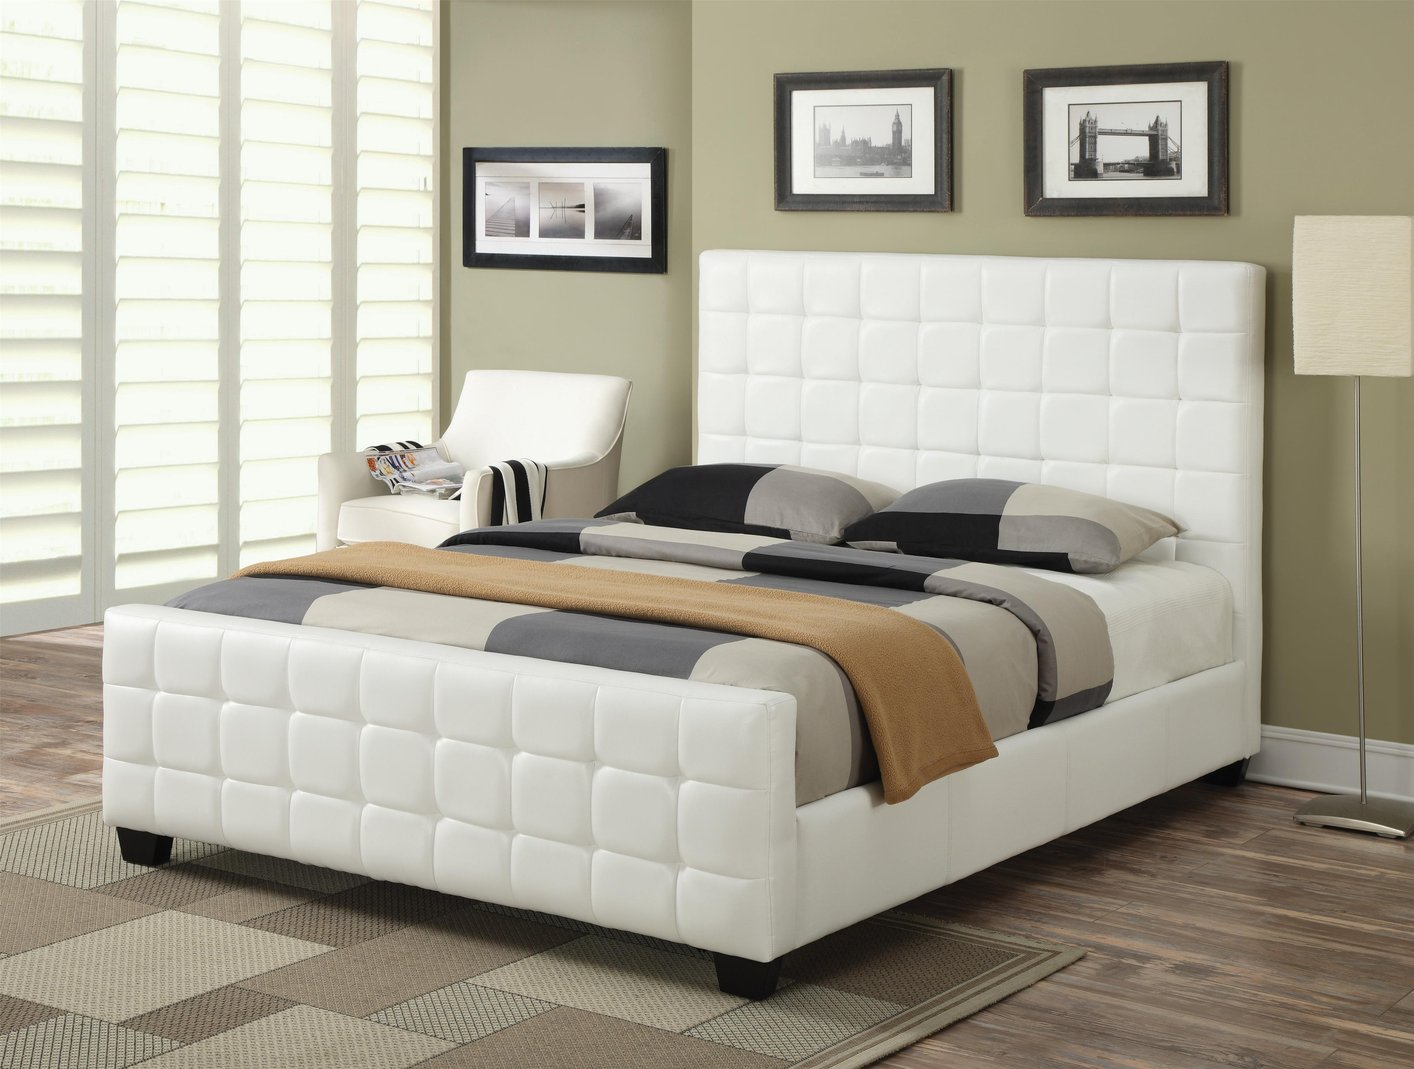 White Wood California King Size Bed - Steal-A-Sofa Furniture Outlet ...